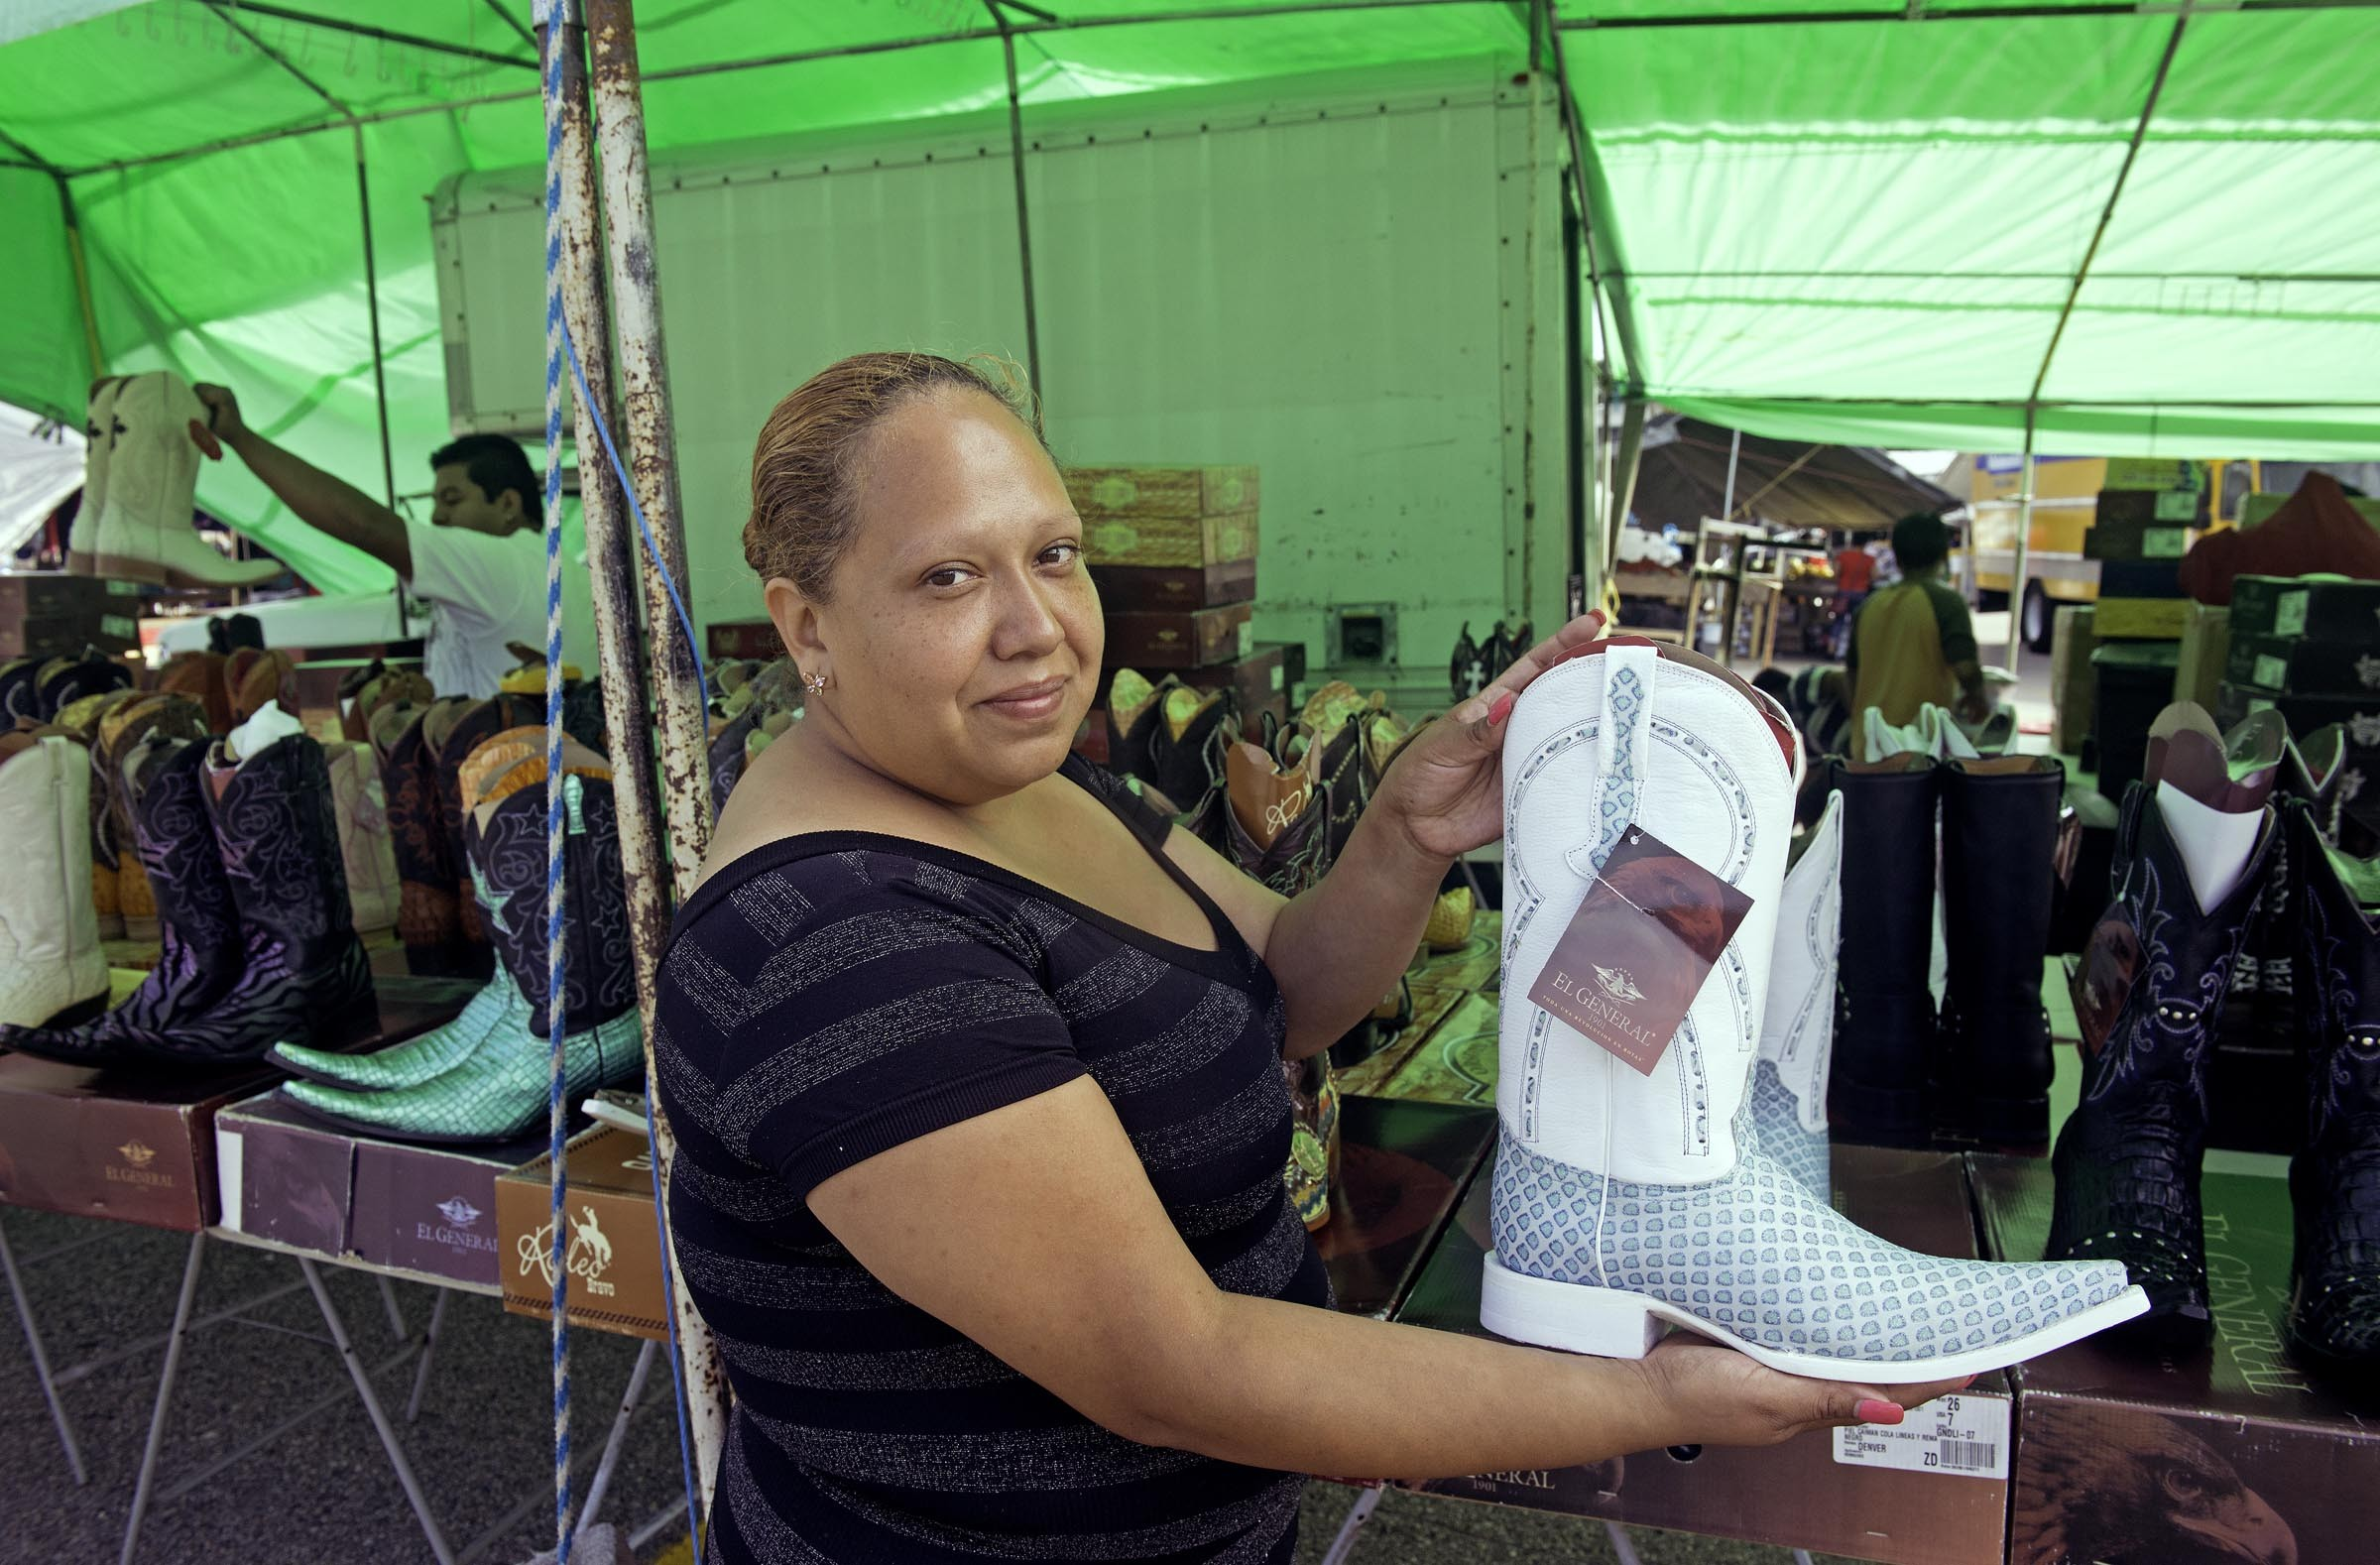 Gloria Rodriguez holds one of the Mexican cowboy boots her family has sold at Bellwood for 11 years. During the week, she works at a hotel; her husband works construction. - SCOTT ELMQUIST